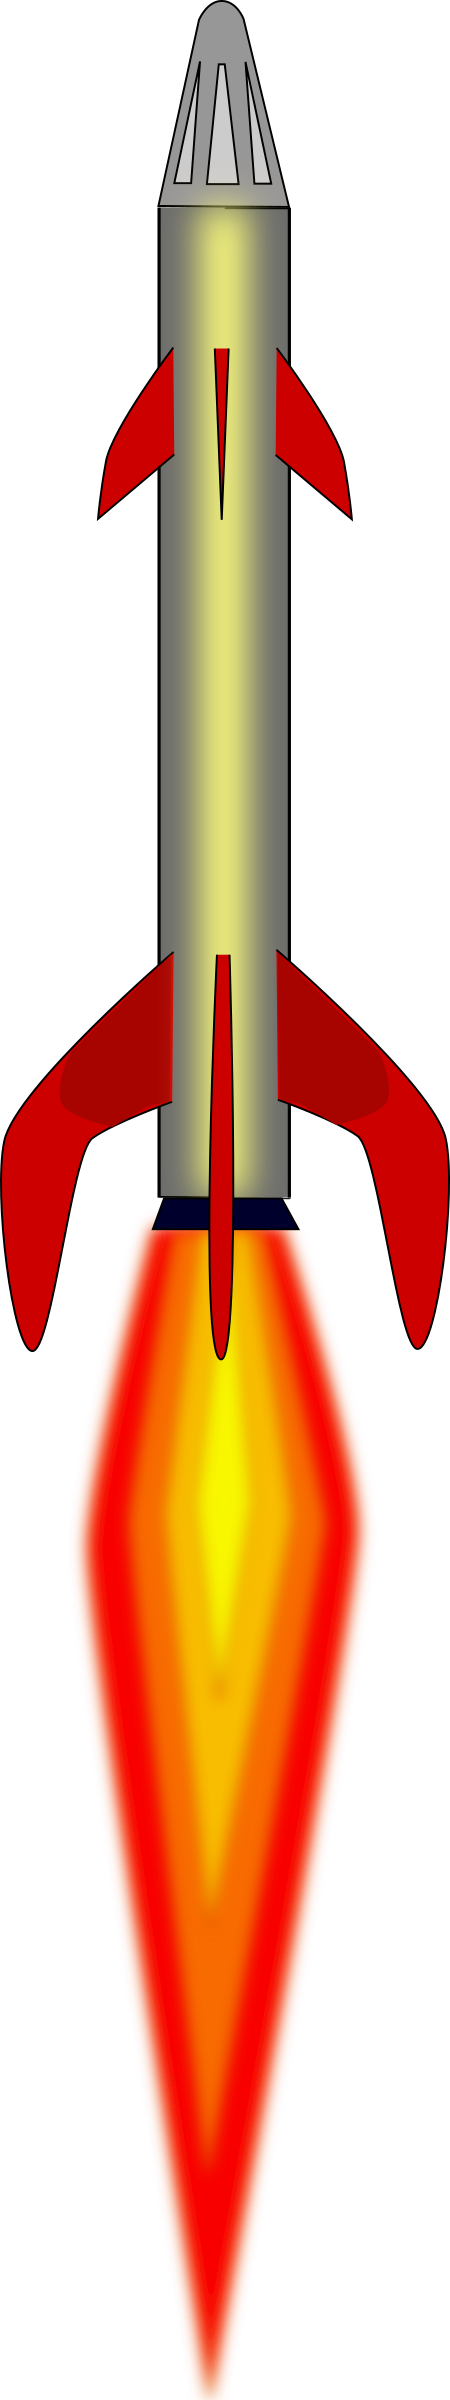 Spaceship clipart abduction. Images of space probe